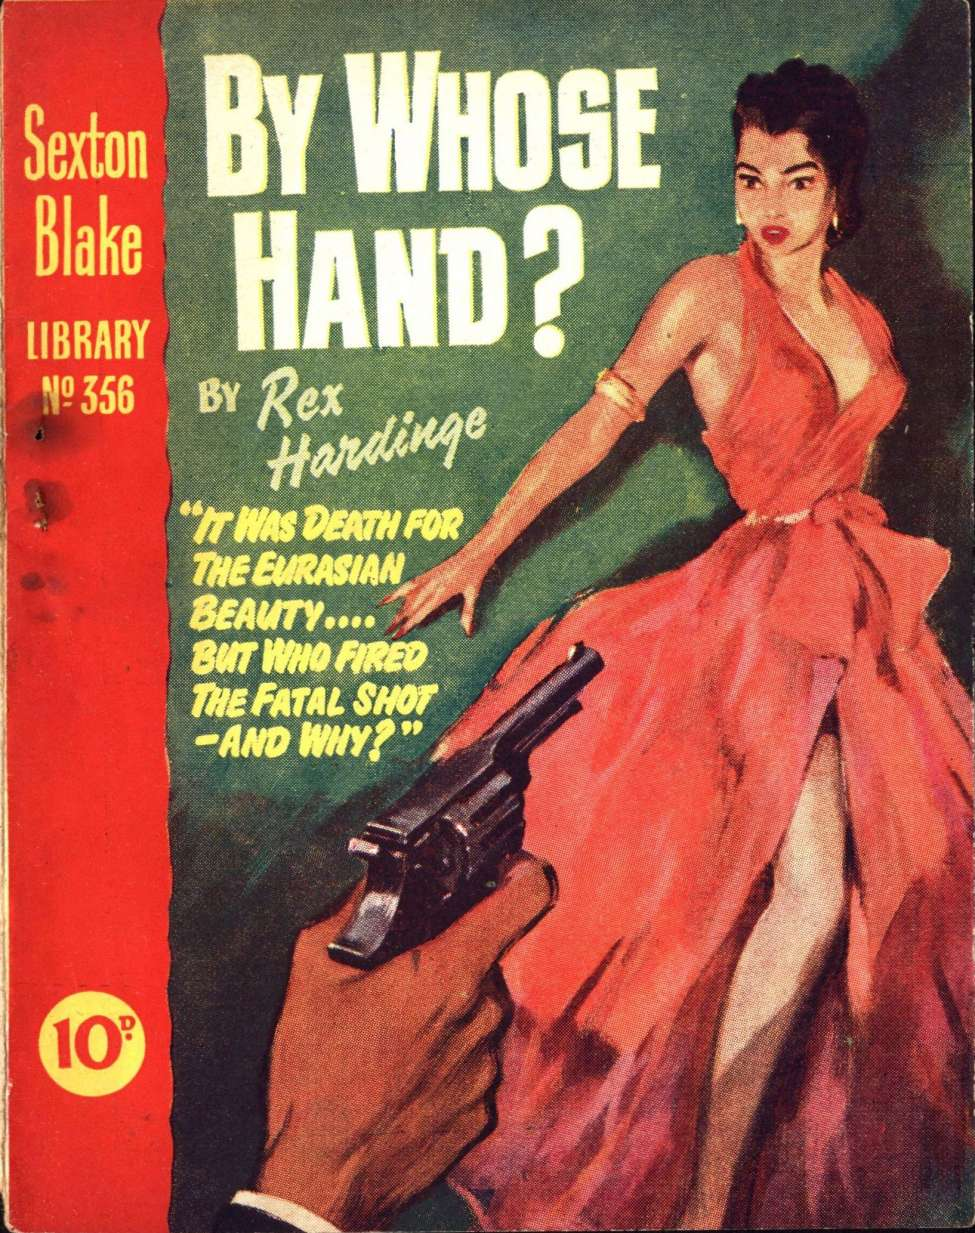 Comic Book Cover For Sexton Blake Library S3 356 - By Whose Hand?